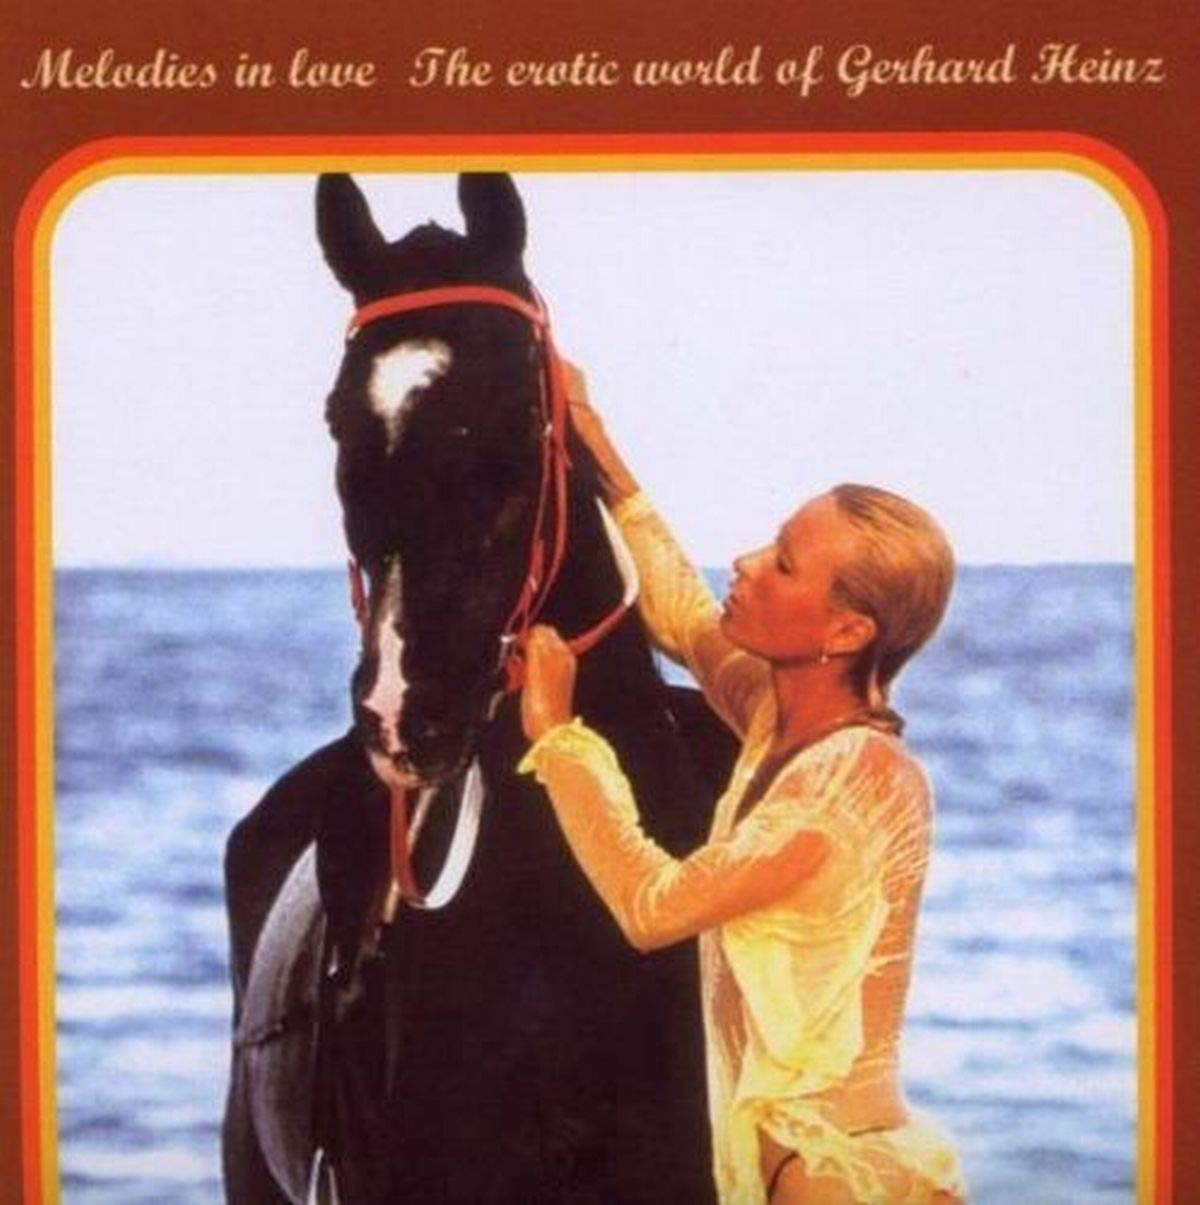 Melodies In Erot 4 5 popular years warranty Love-The